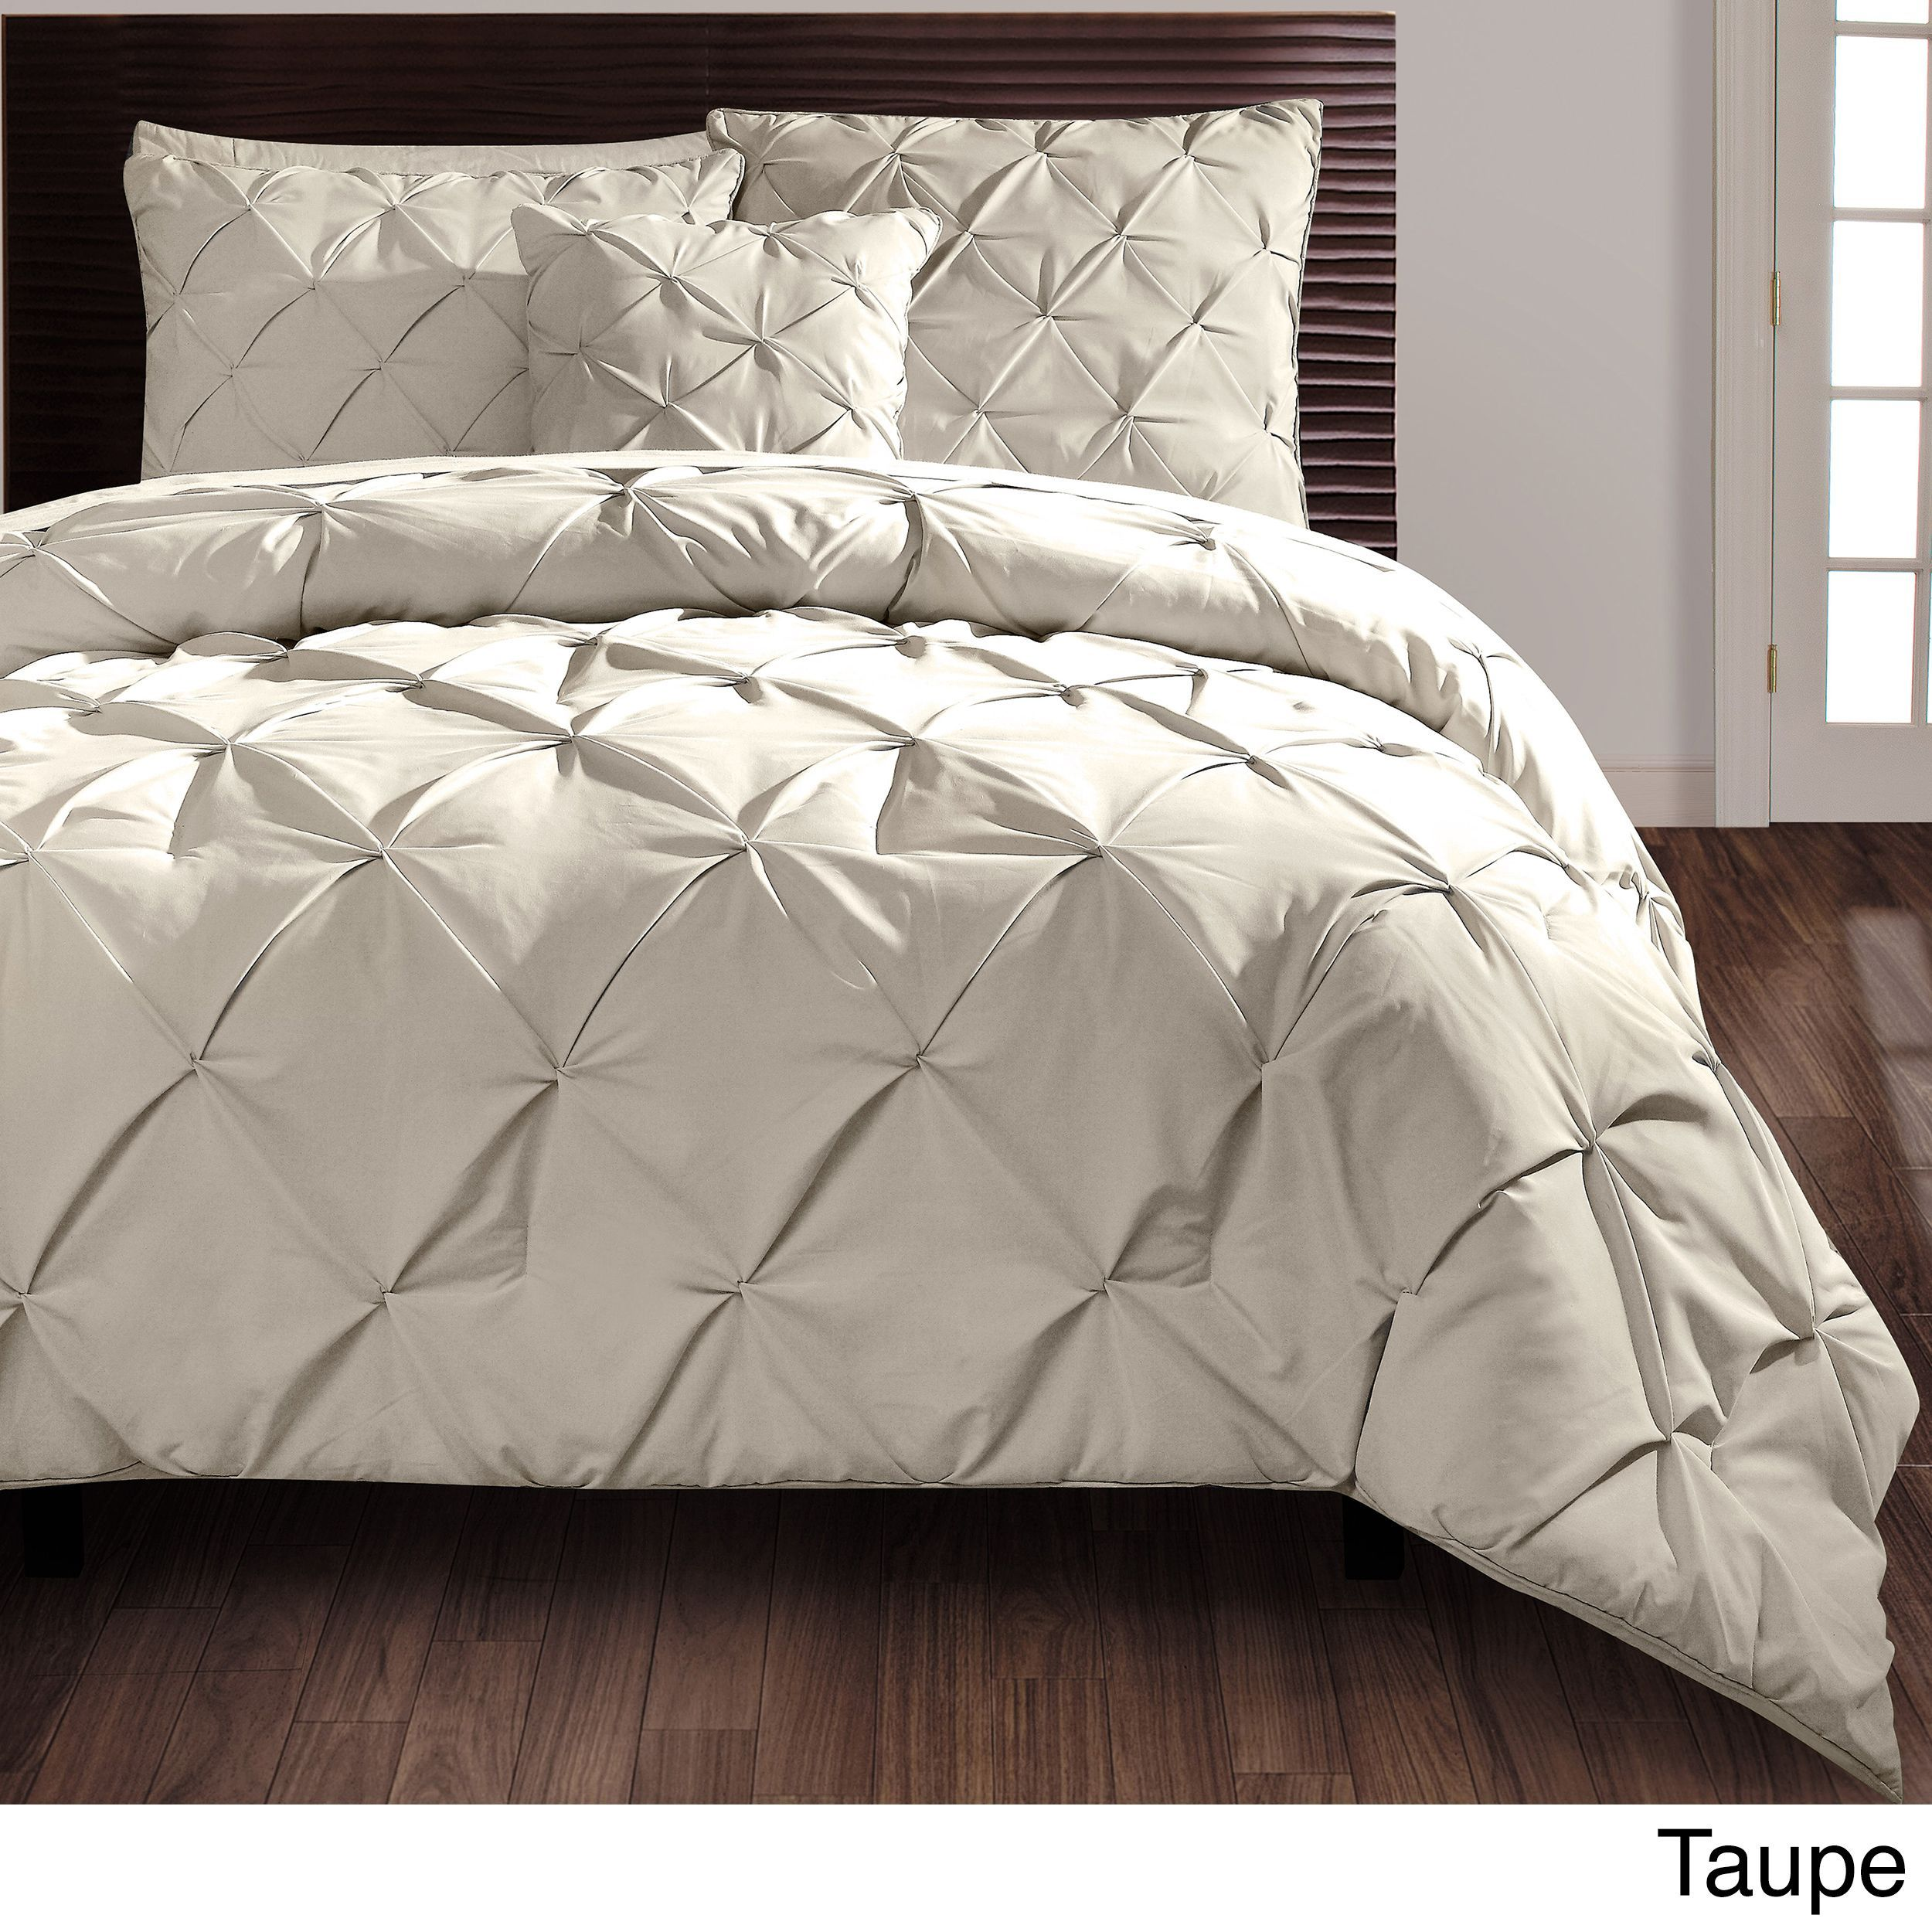 Beautify Your Bedroom With This Sophisticated Four Piece Comforter Set. A  Puckered Diamond Design